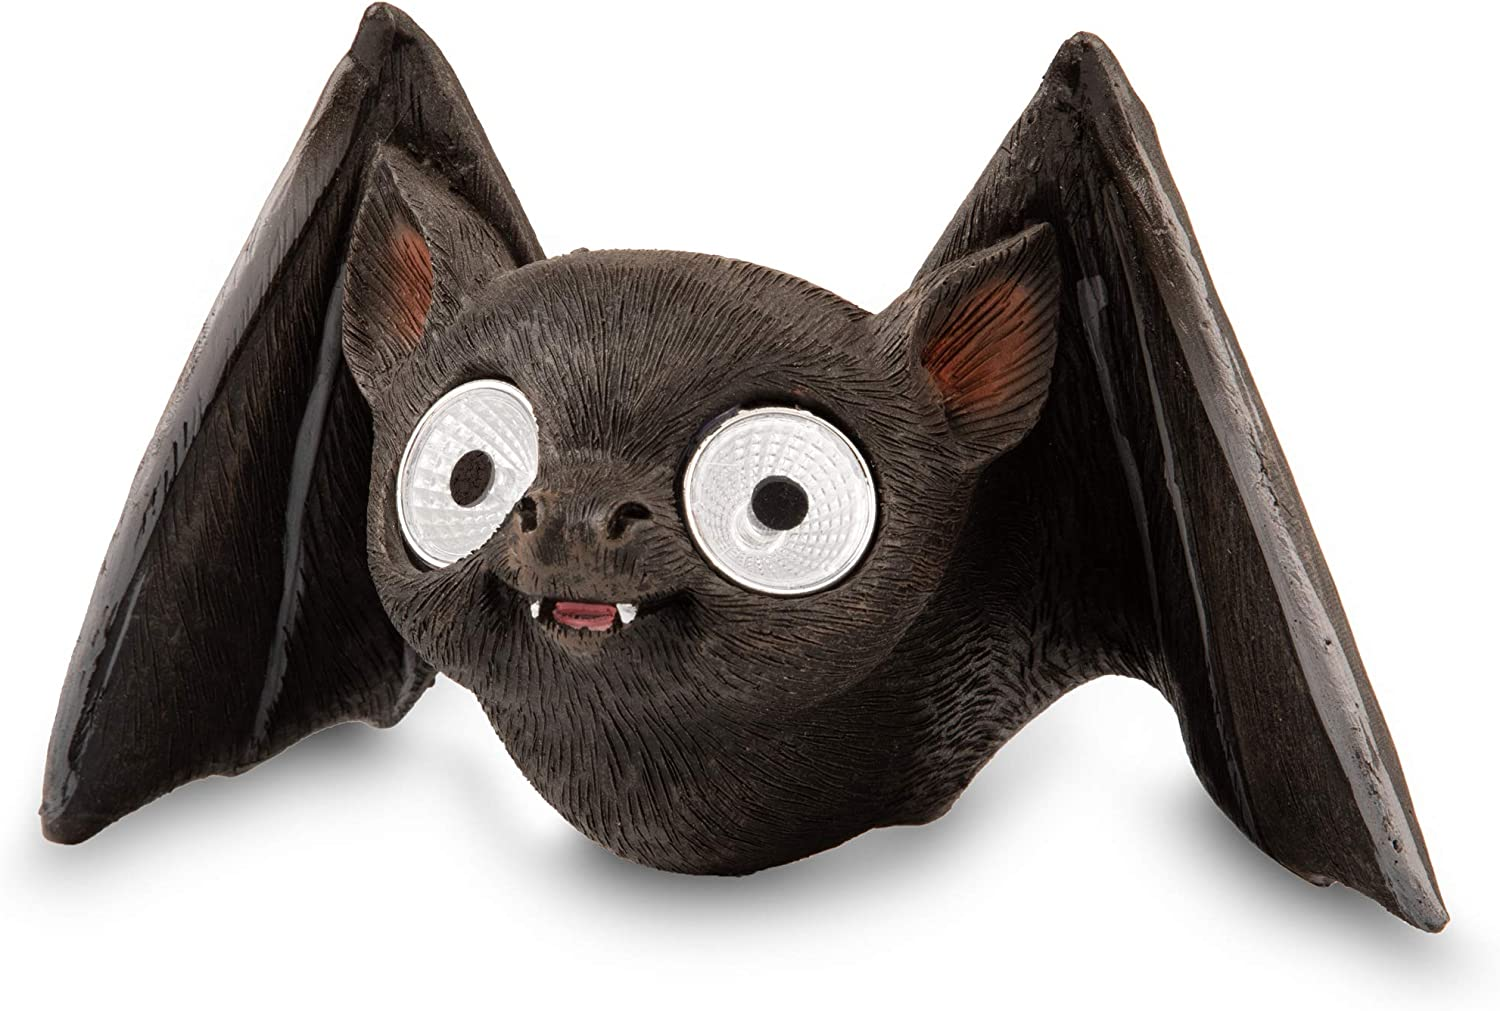 Solar Garden Baby Bat Decoration | Outdoor Yard Decor - Lawn Ornaments | Solar Decorative Lights for Patio, Balcony, Deck | Weather Resistant - LED | Housewarming Gift | Auto On/Off (Black)